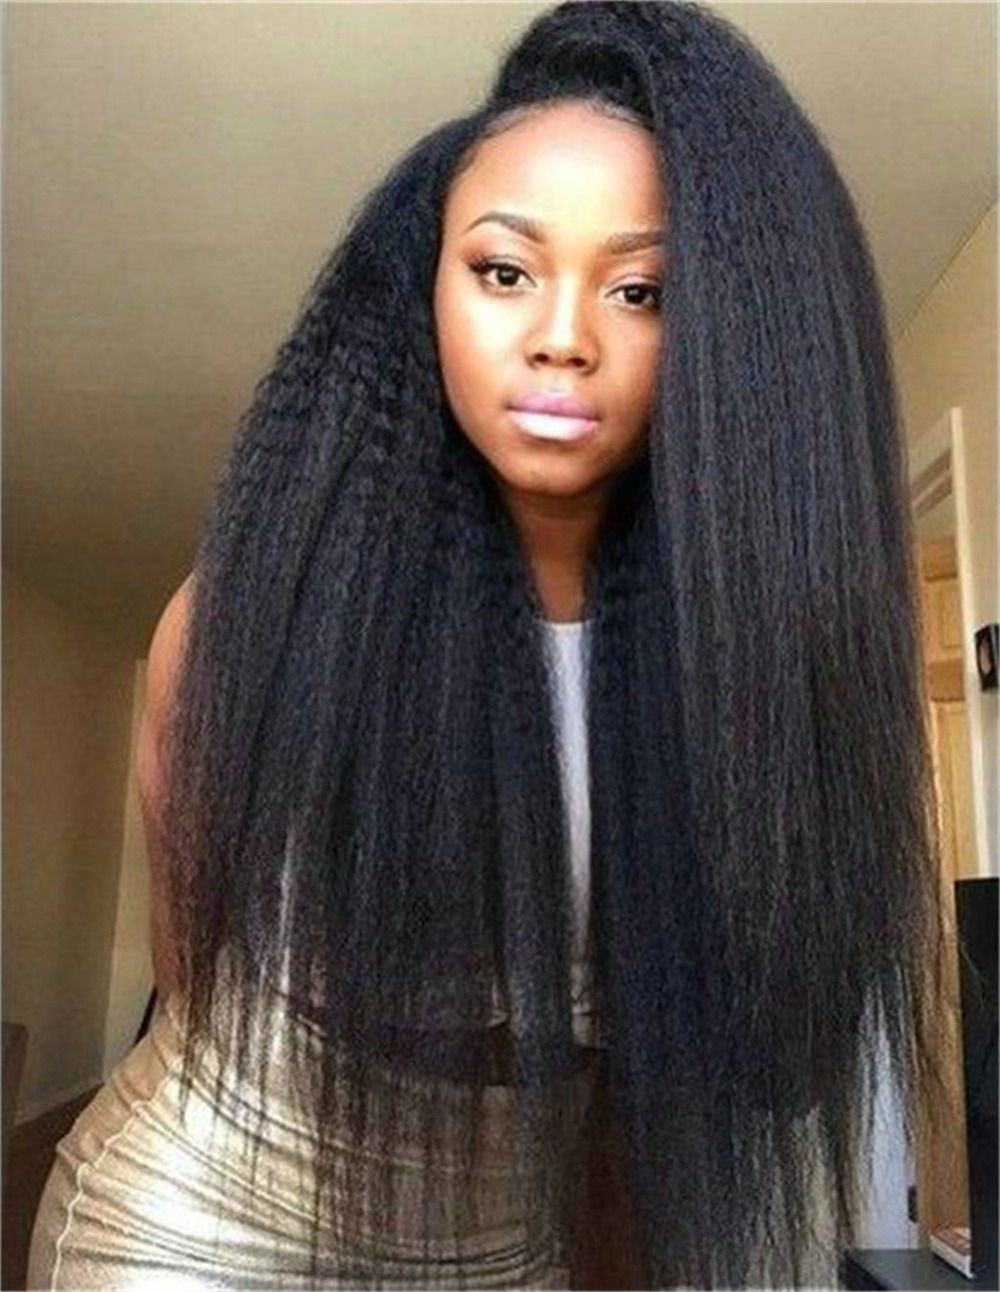 Long Black African American Hair Women Medium Haircut LONG HAIR